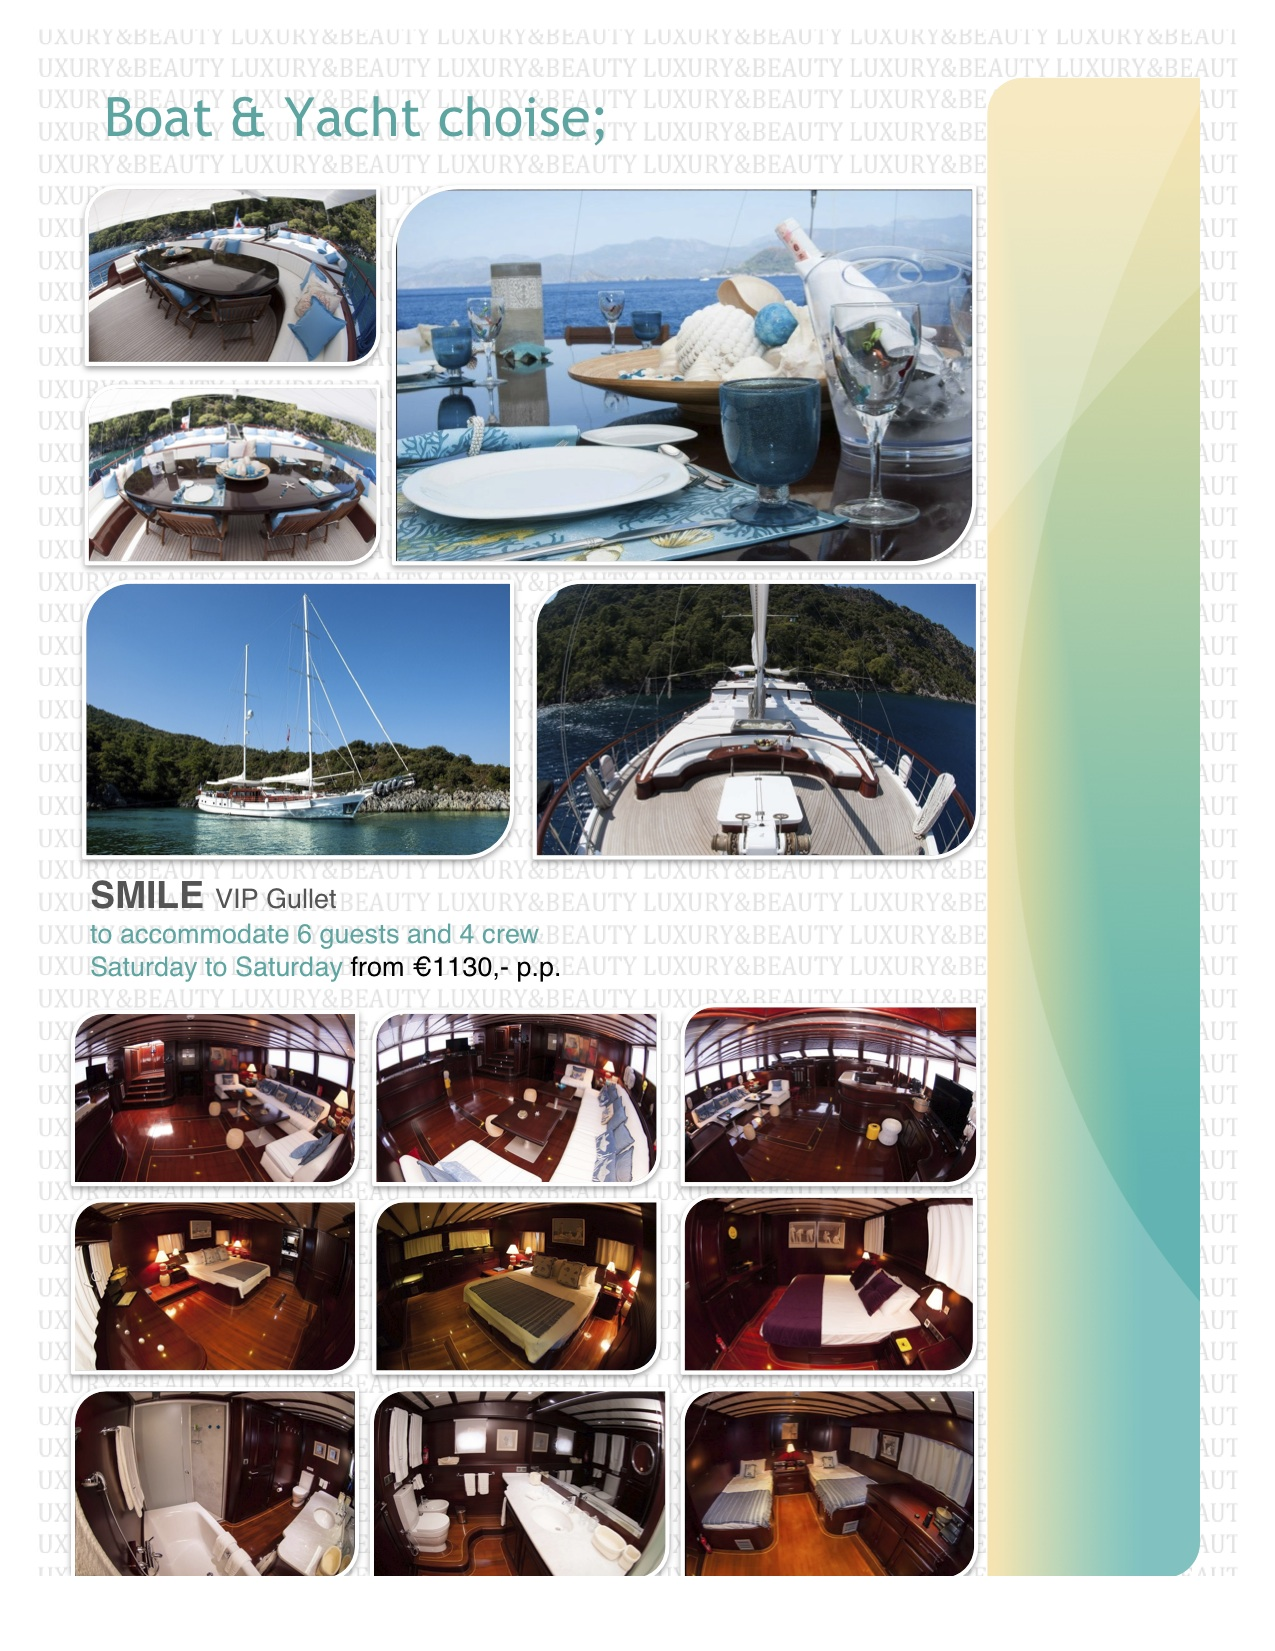 Luxury&Beauty_Yoga_Yacht.jpg12